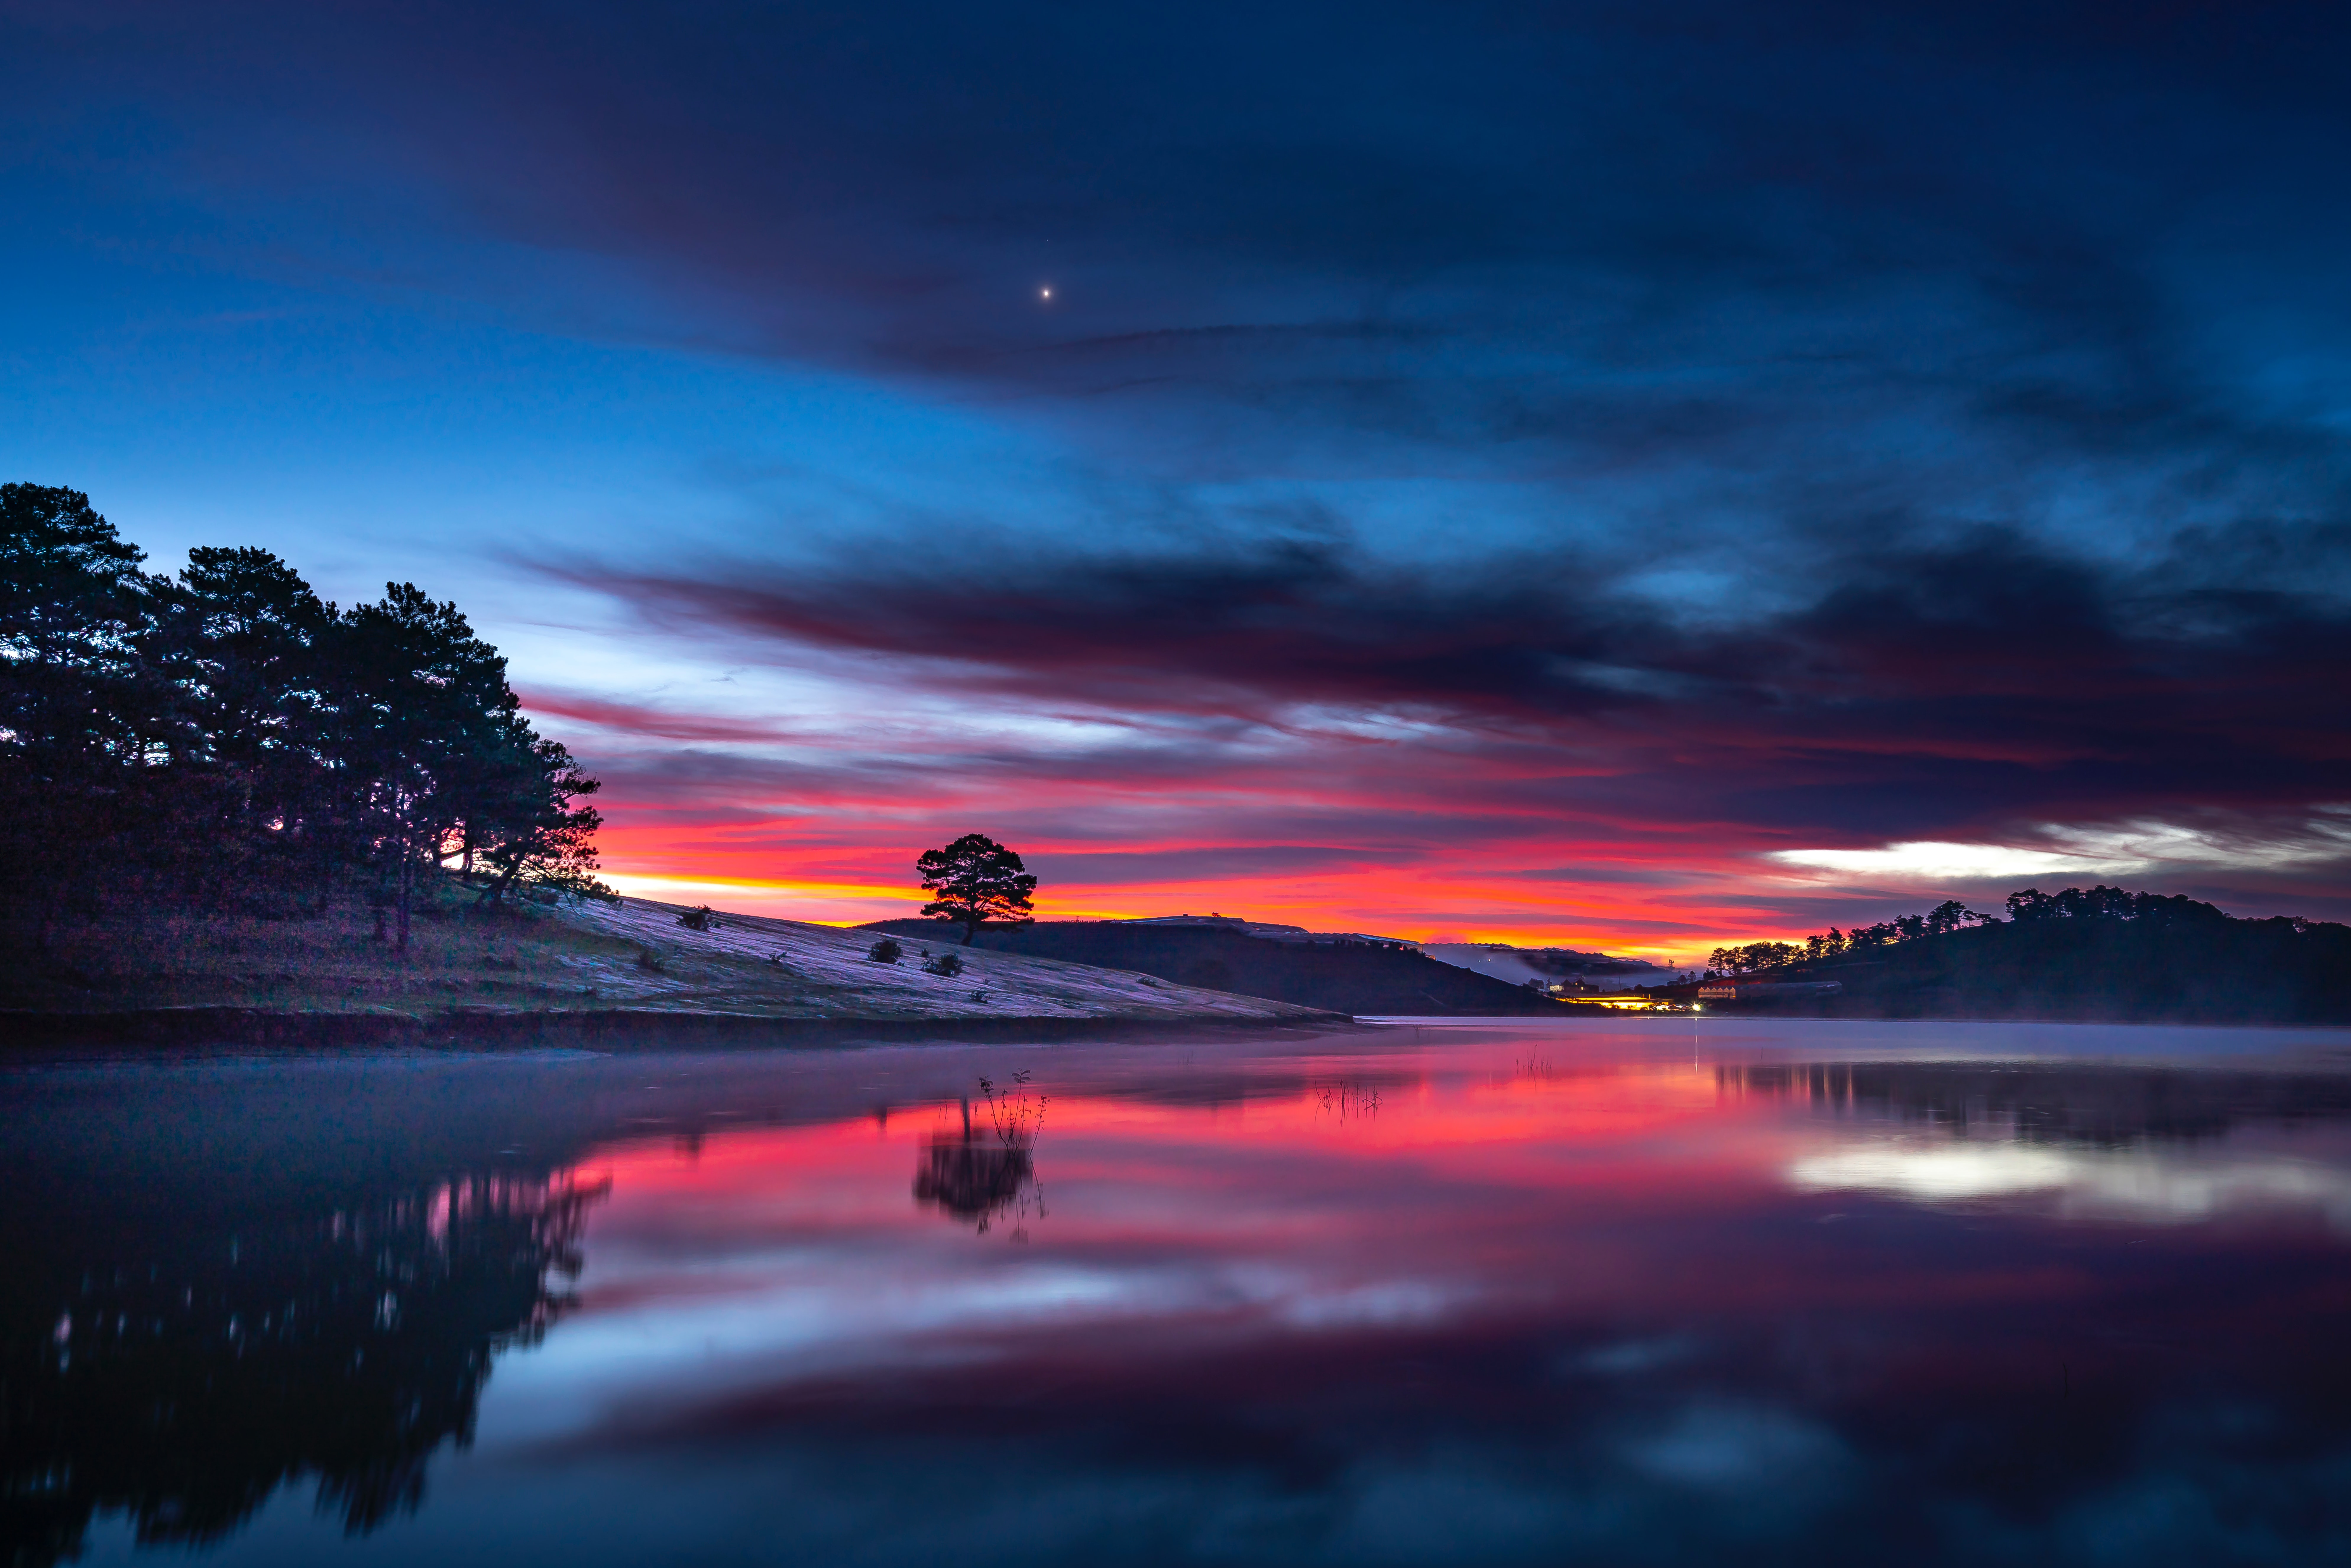 1920x1080 Sunset Clouds Reflection In Lake 8k Laptop Full ...